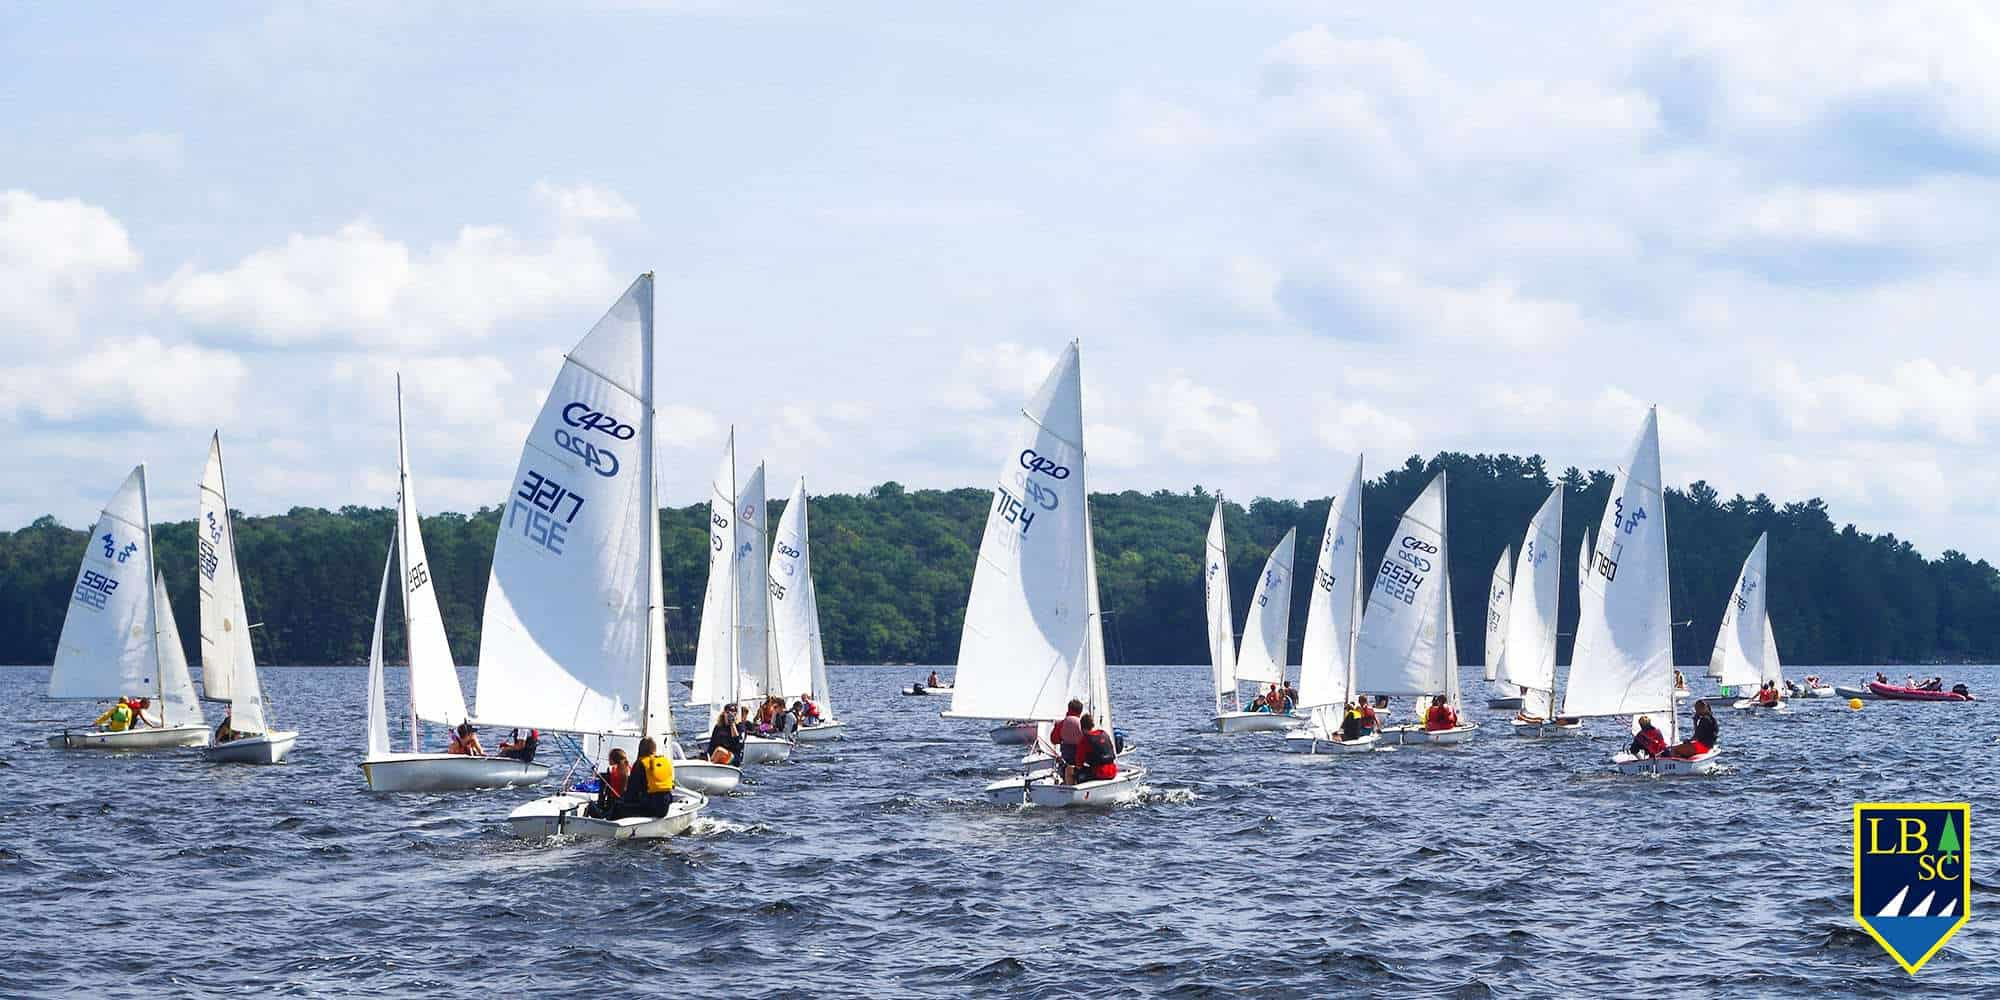 Lake of Bays Sailing Club